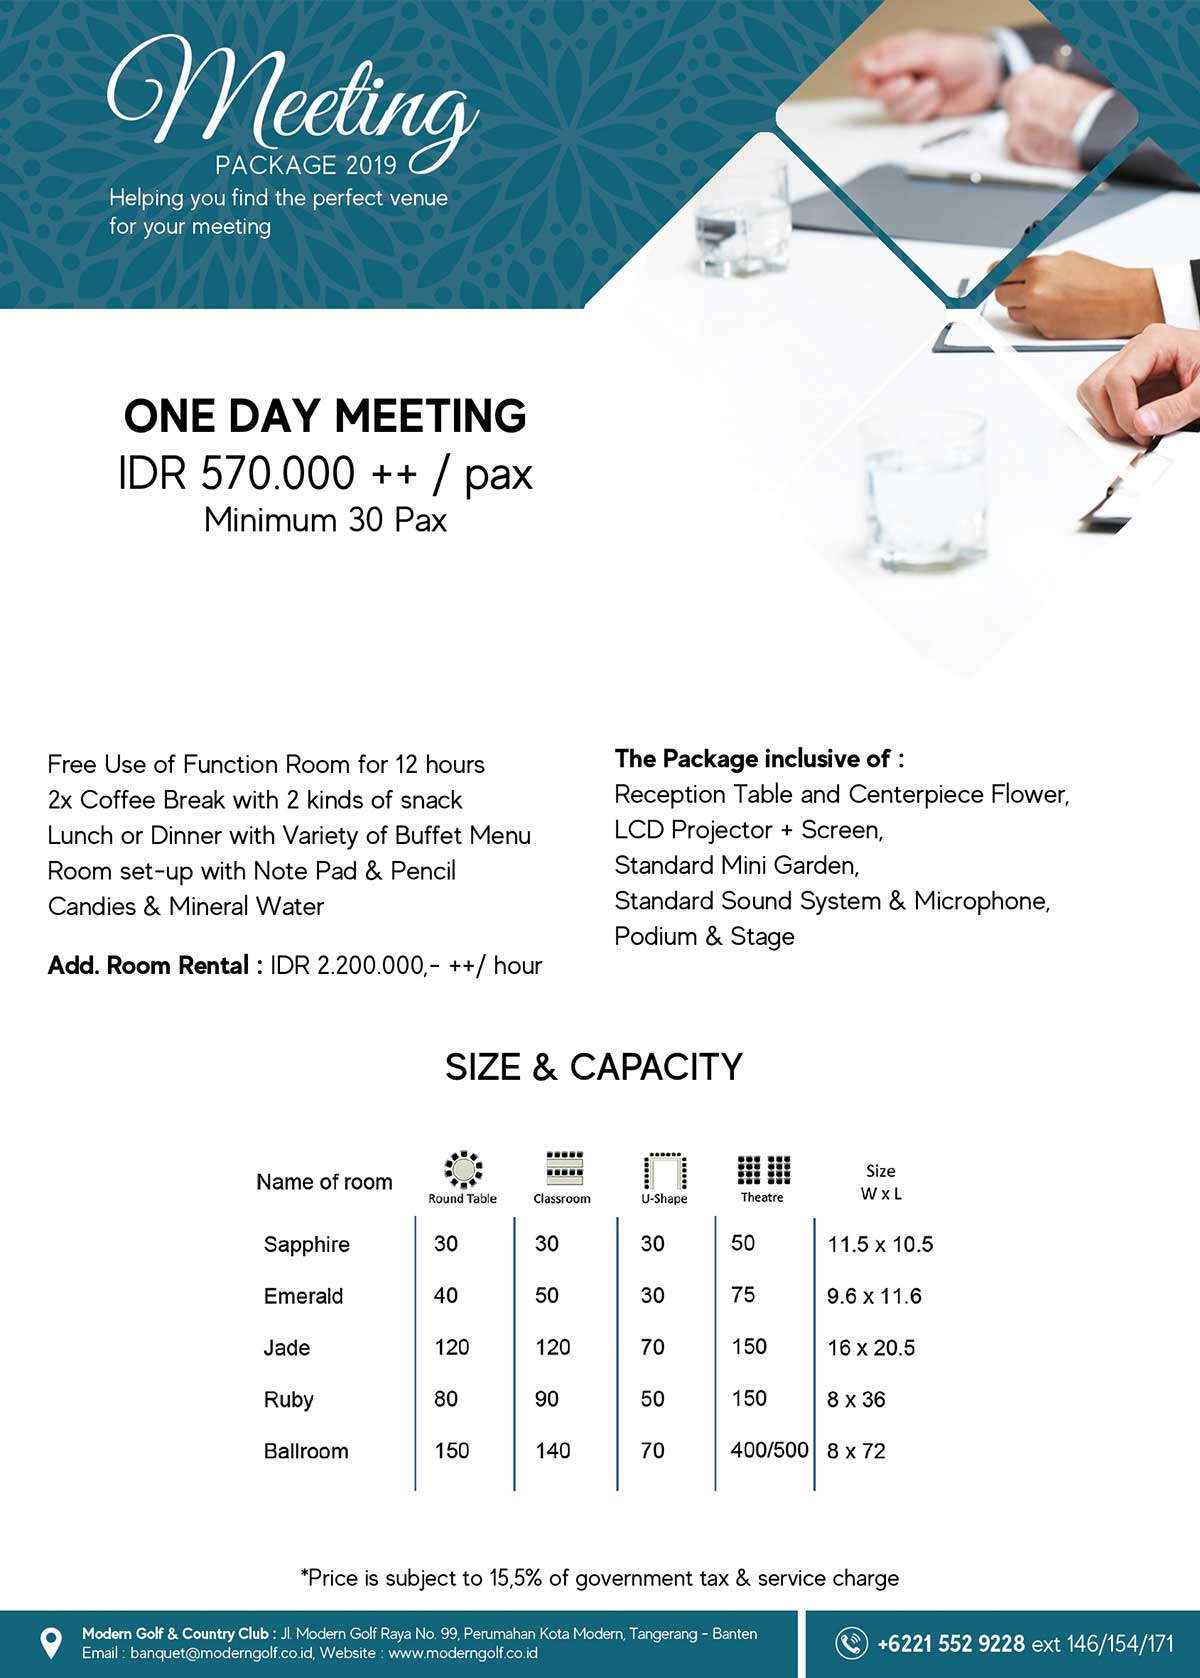 Meeting One Day package